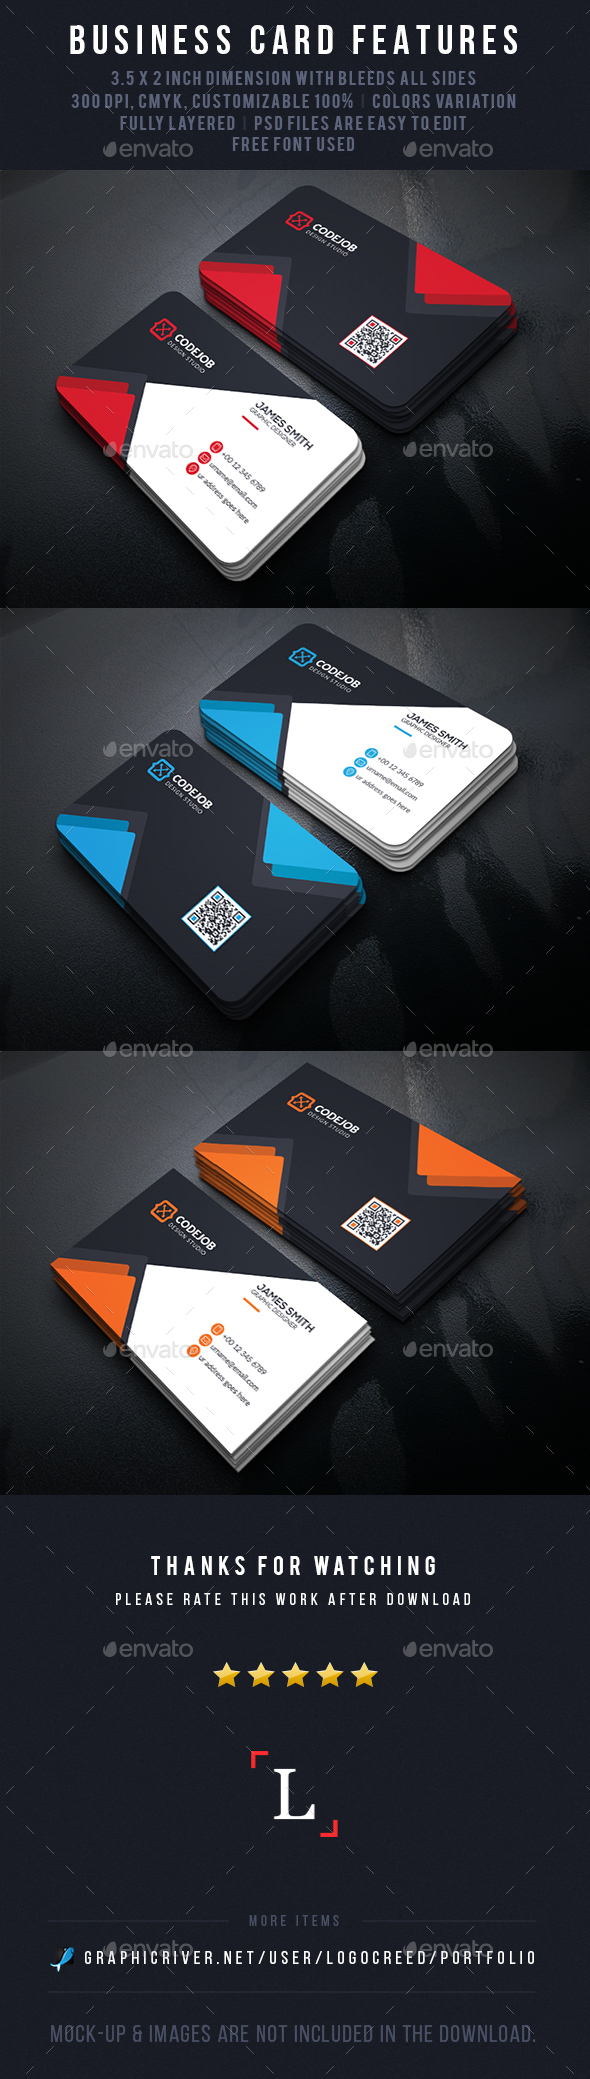 Shape Business Cards - Business Cards Print Templates